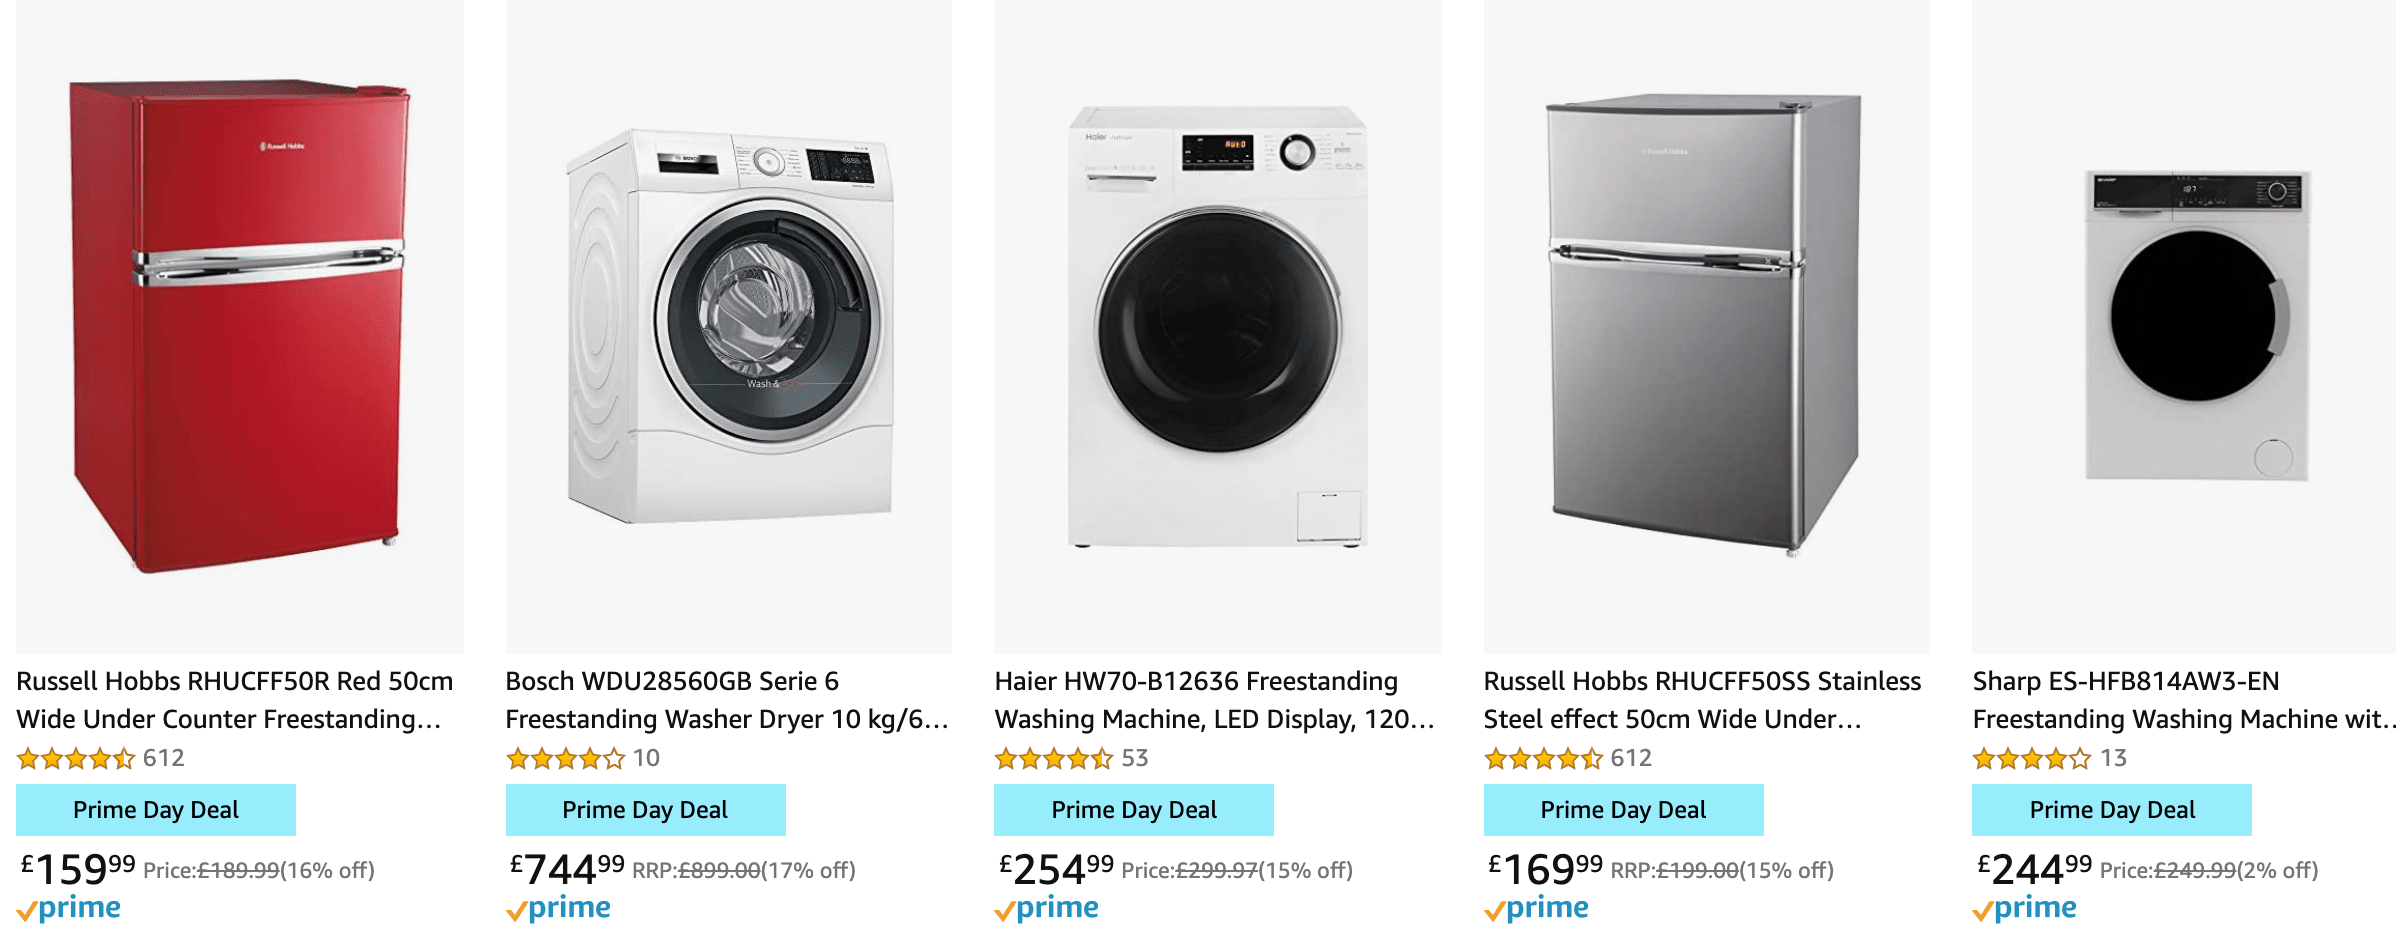 Large Appliances Amazon Prime Day